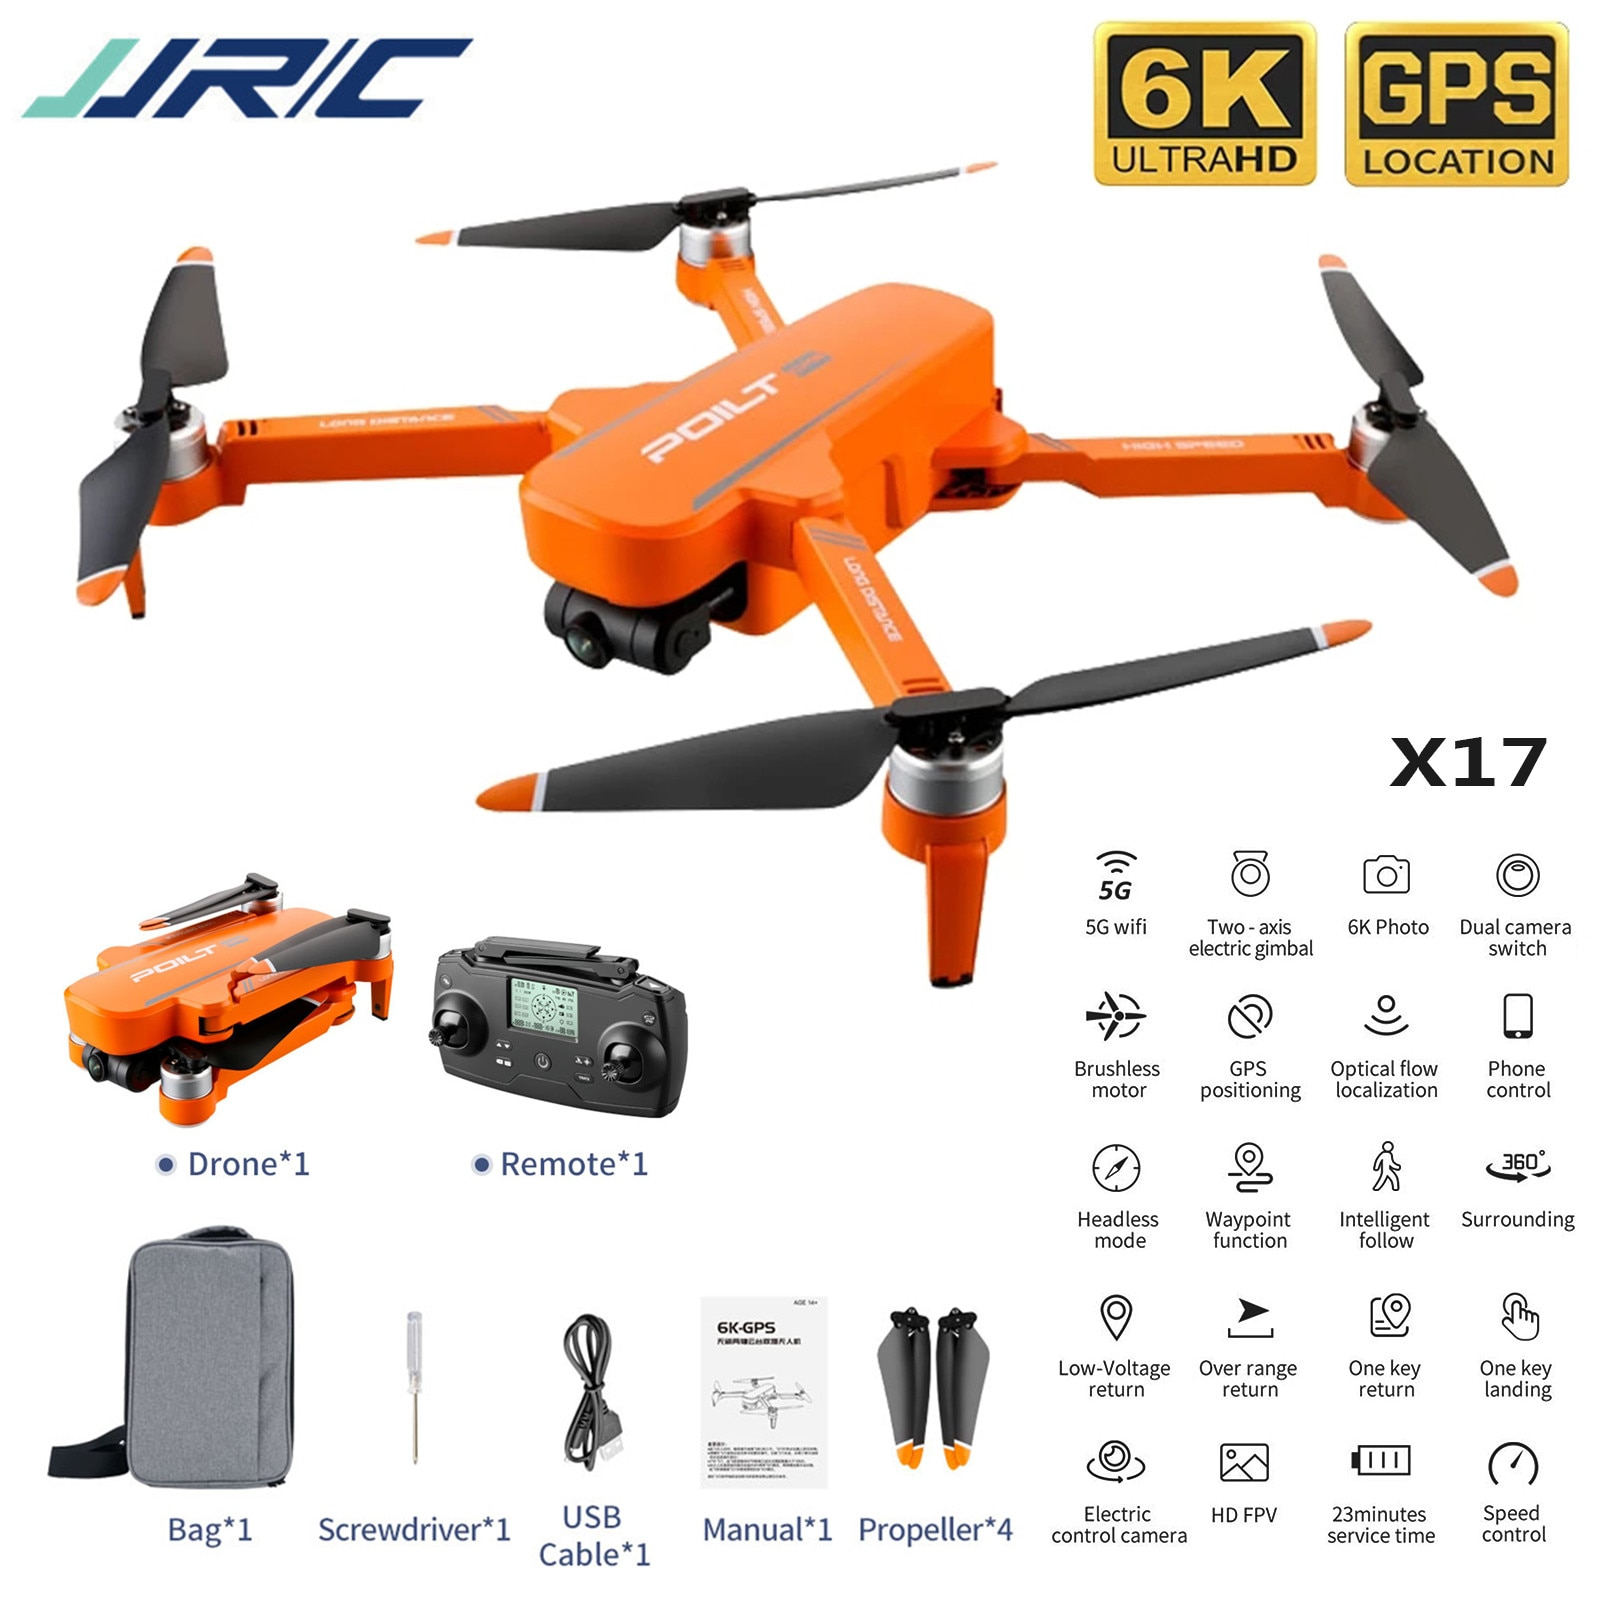 RC Drone Jjr / C X17 6k Hd Dual Camera Aerial Drone Foldable Brushless Motor 5G Wifi Gps Positioning Return Home Quadcopter #F